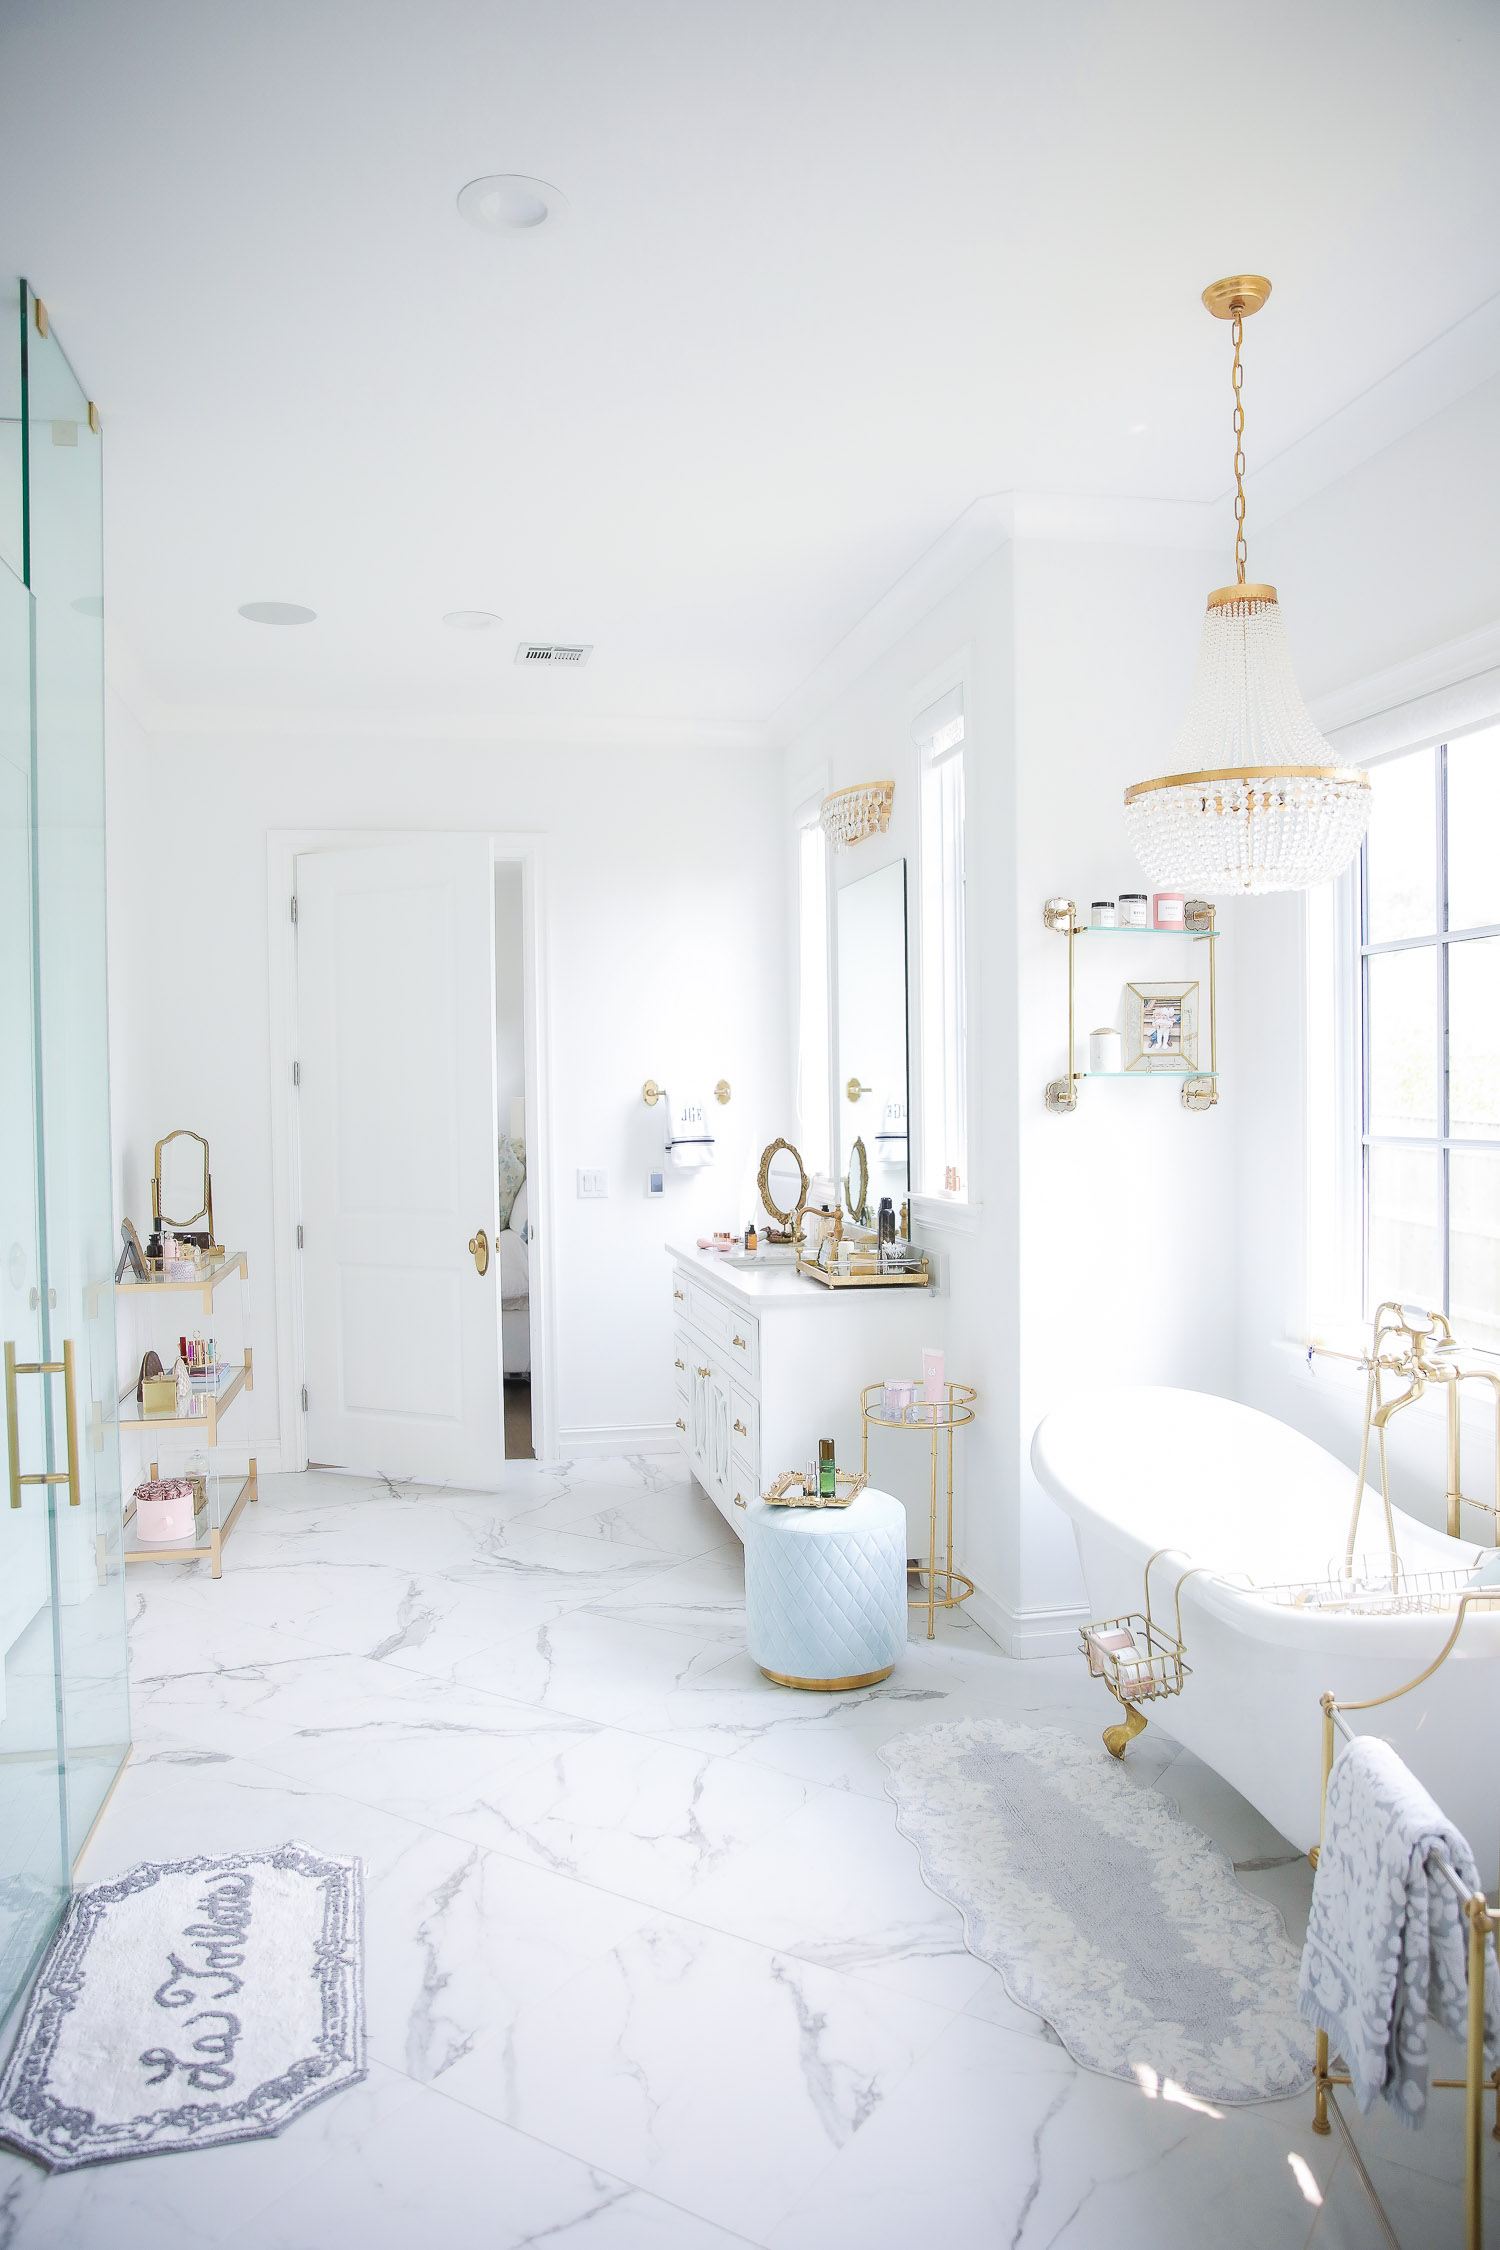 Emily gemma master bathroom, Nordstrom anniversary sale 2021 beauty must haves, anthropologie bathrom decor 2021, pinterest bathroom all white gold | Nordstrom Anniversary Sale 2021 by popular US life and style blog, The Sweetest Thing: image of a master bedroom with marble flooring, white and gold clawfoot tub, gold and crystal chandelier, gold metal towel stand and walk in shower.